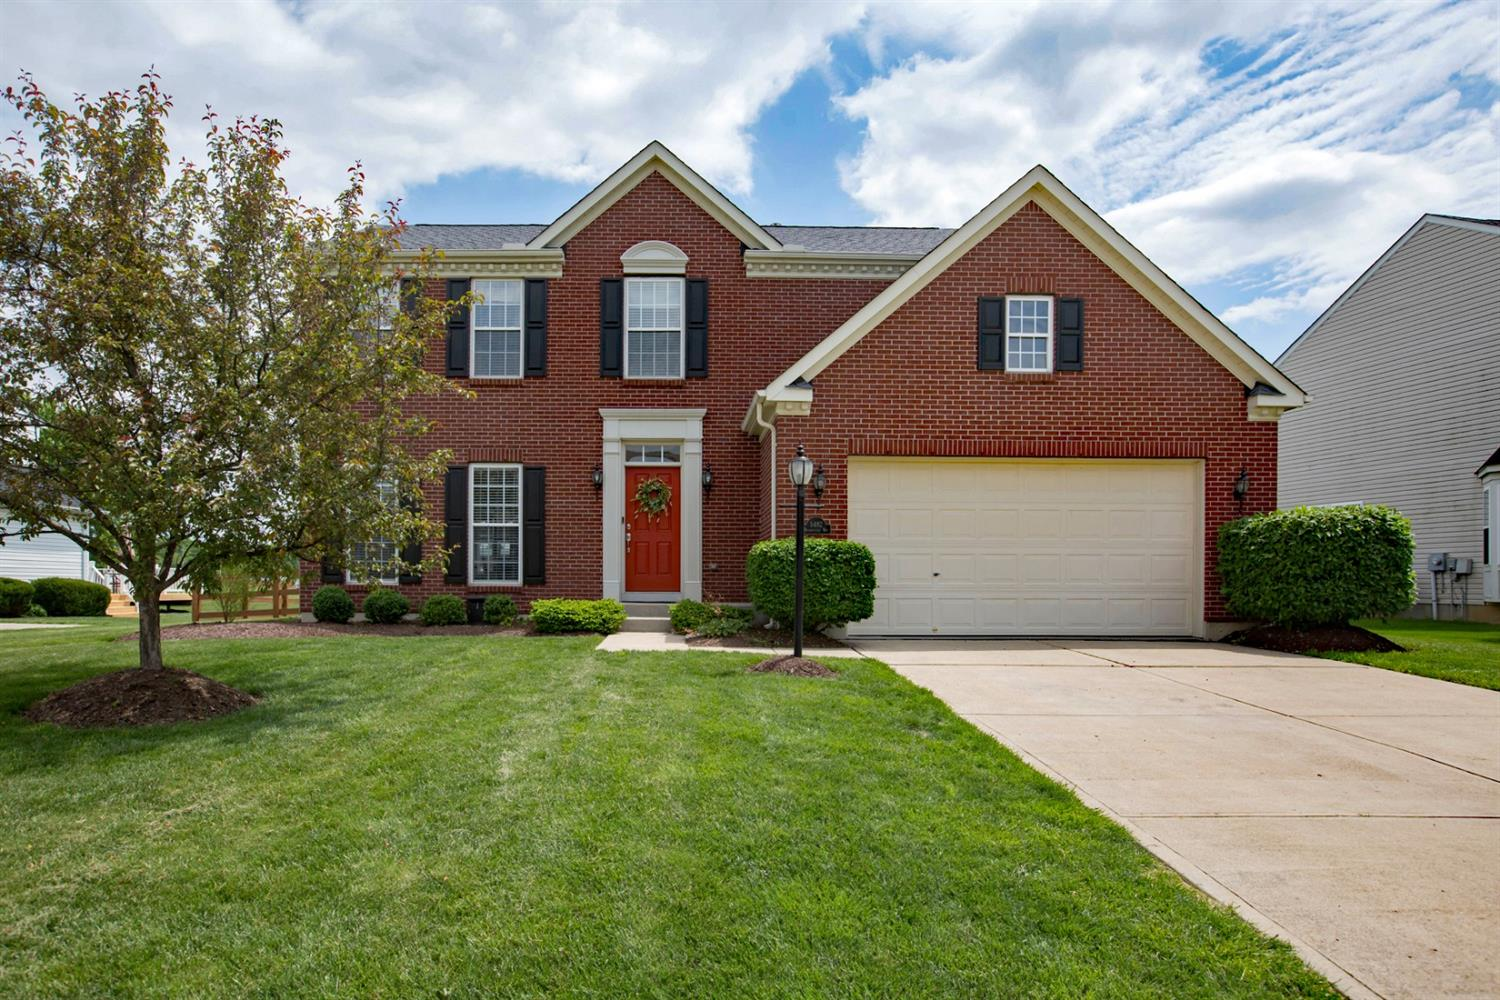 Property for sale at 5482 Woodmansee Way, Liberty Twp,  Ohio 45011